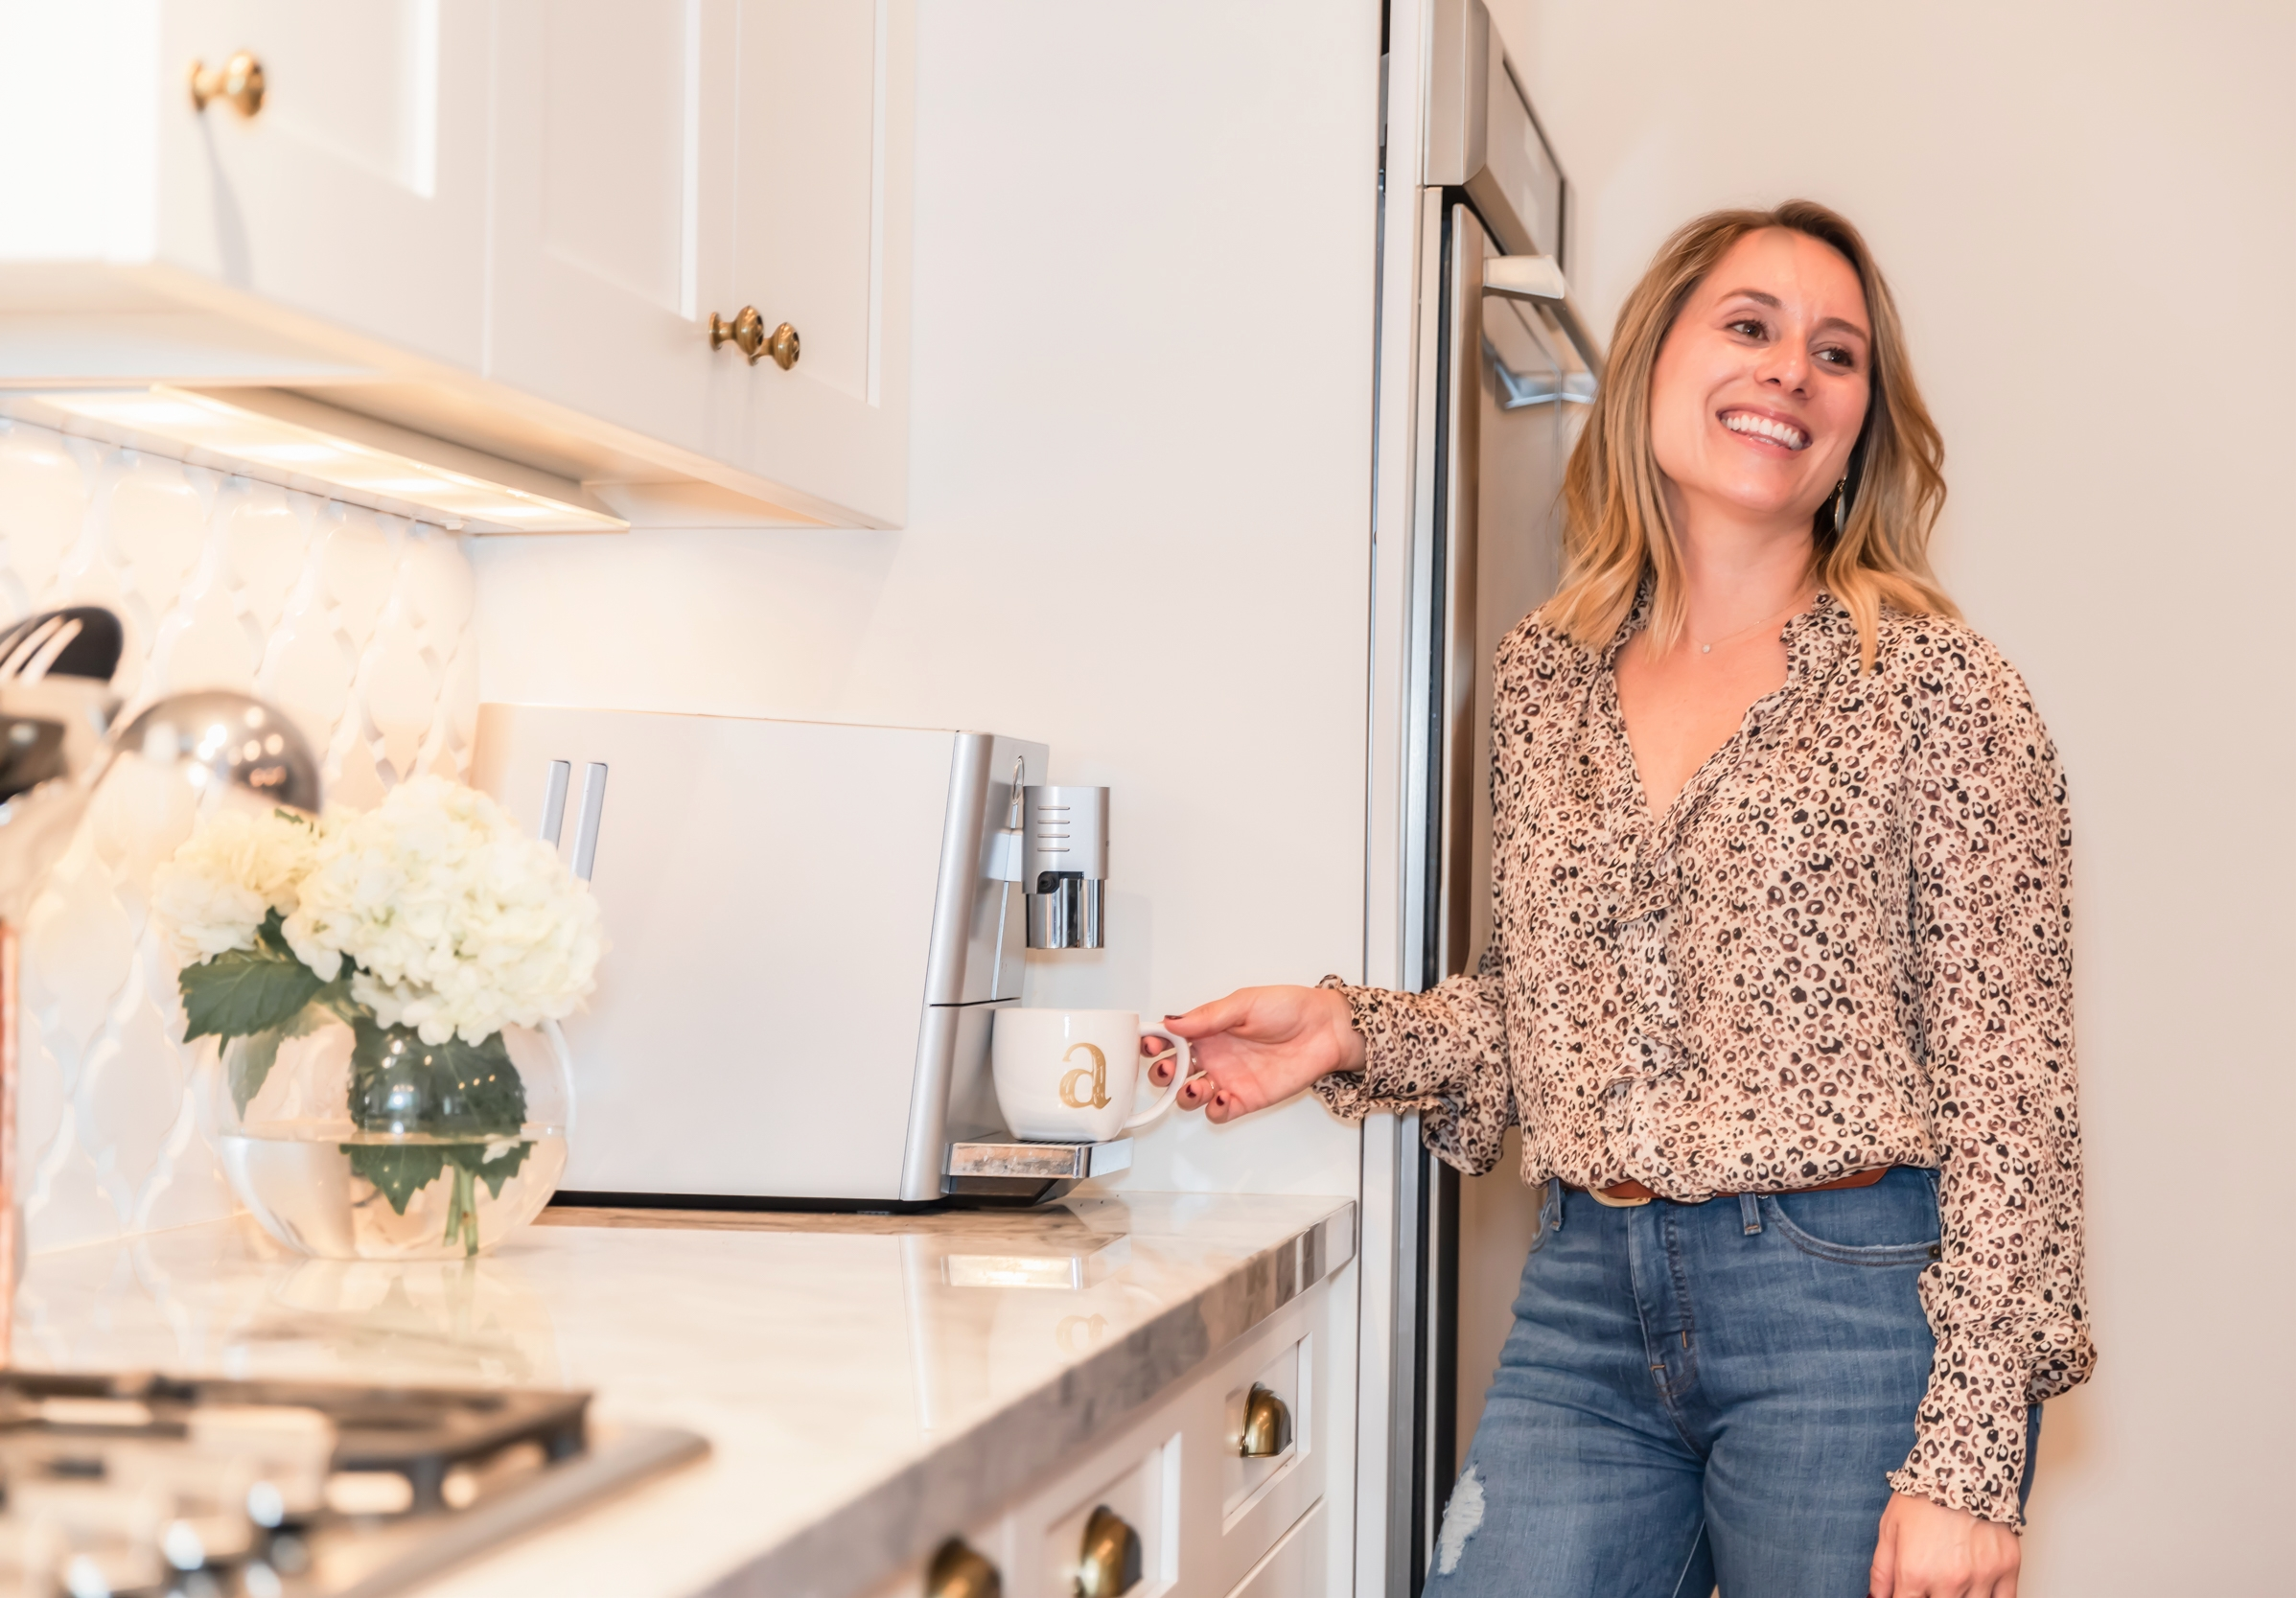 """Meet the Aronsons - One cup of coffee with Katrina Aronson will leave you feeling inspired. Katrina is effortlessly chic, whether it be her on point """"choppy lob"""" haircut or her perfectly curated assemblage of home decor, In short, Katrina is all things trendy."""